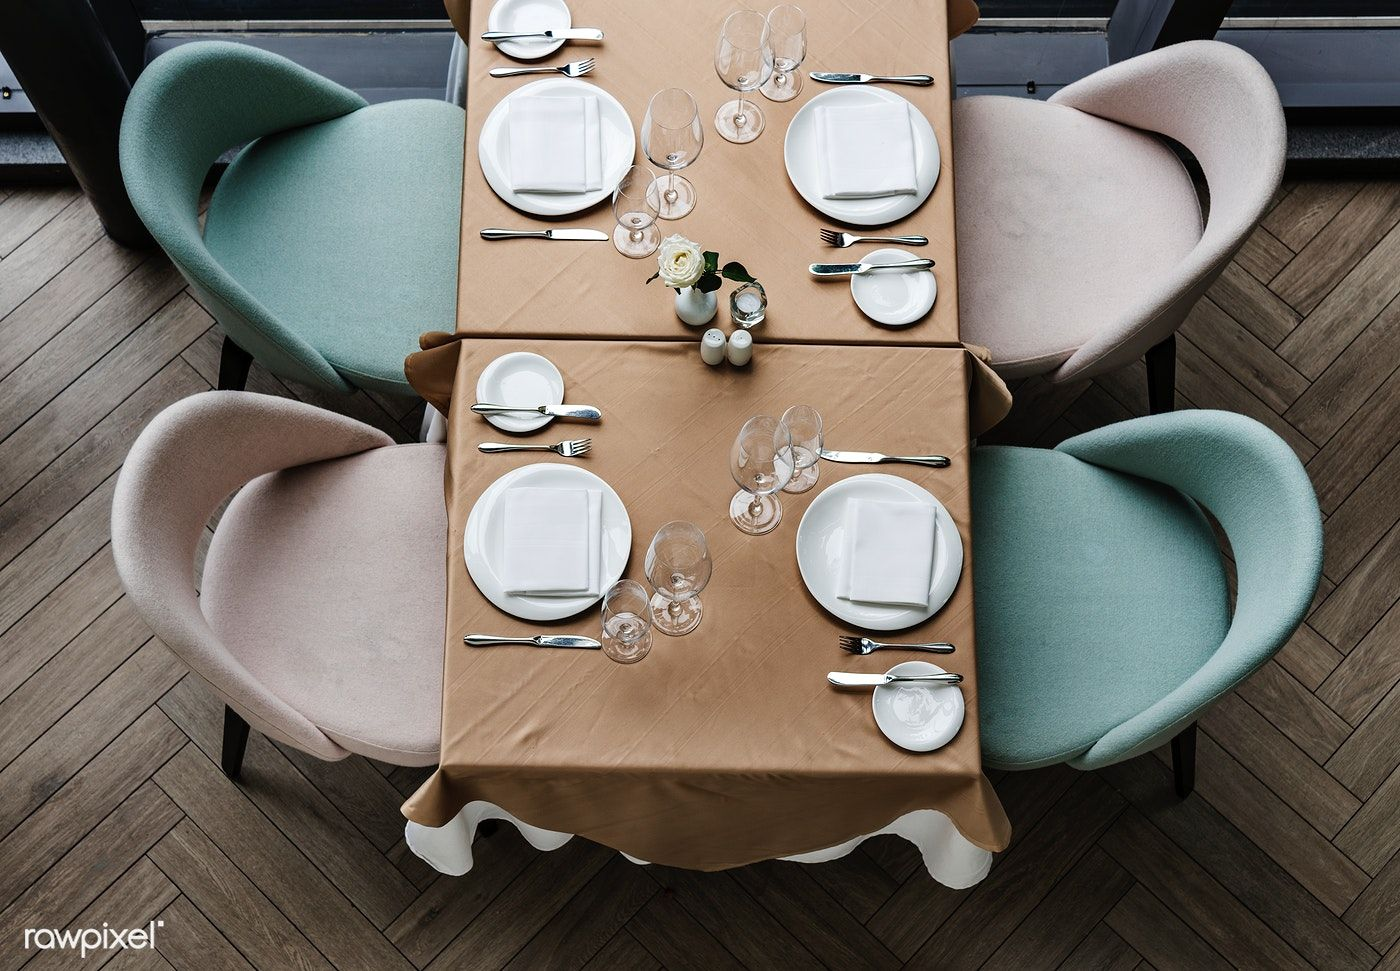 Empty Dining Table In A Restaurant Free Image By Rawpixel Com